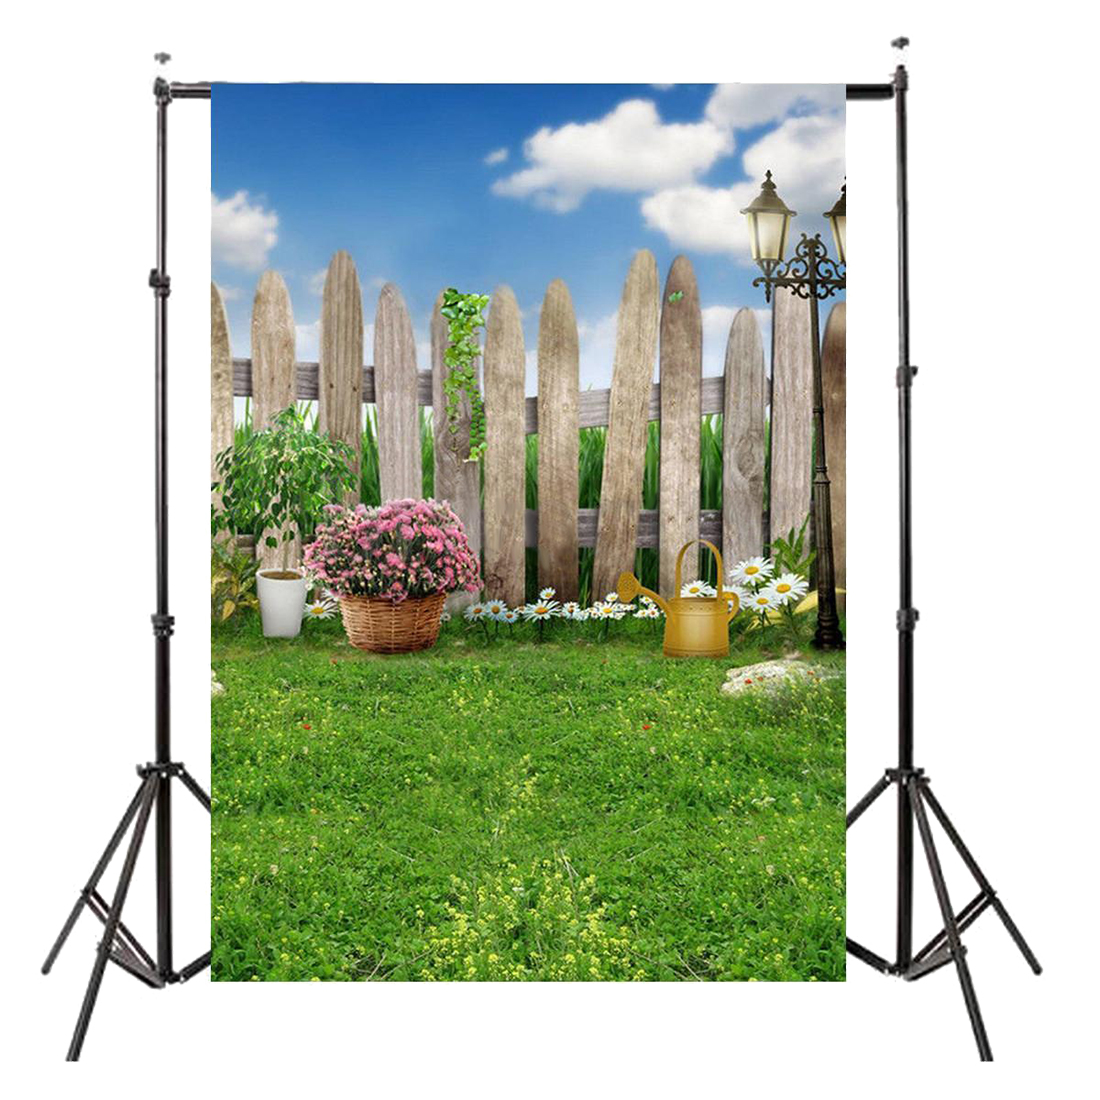 3x5FT Vinyl Photography Backdrop Wall Photo Background Blue sky and white clouds 3x5ft vinyl photography backdrop wall photo background dark gray